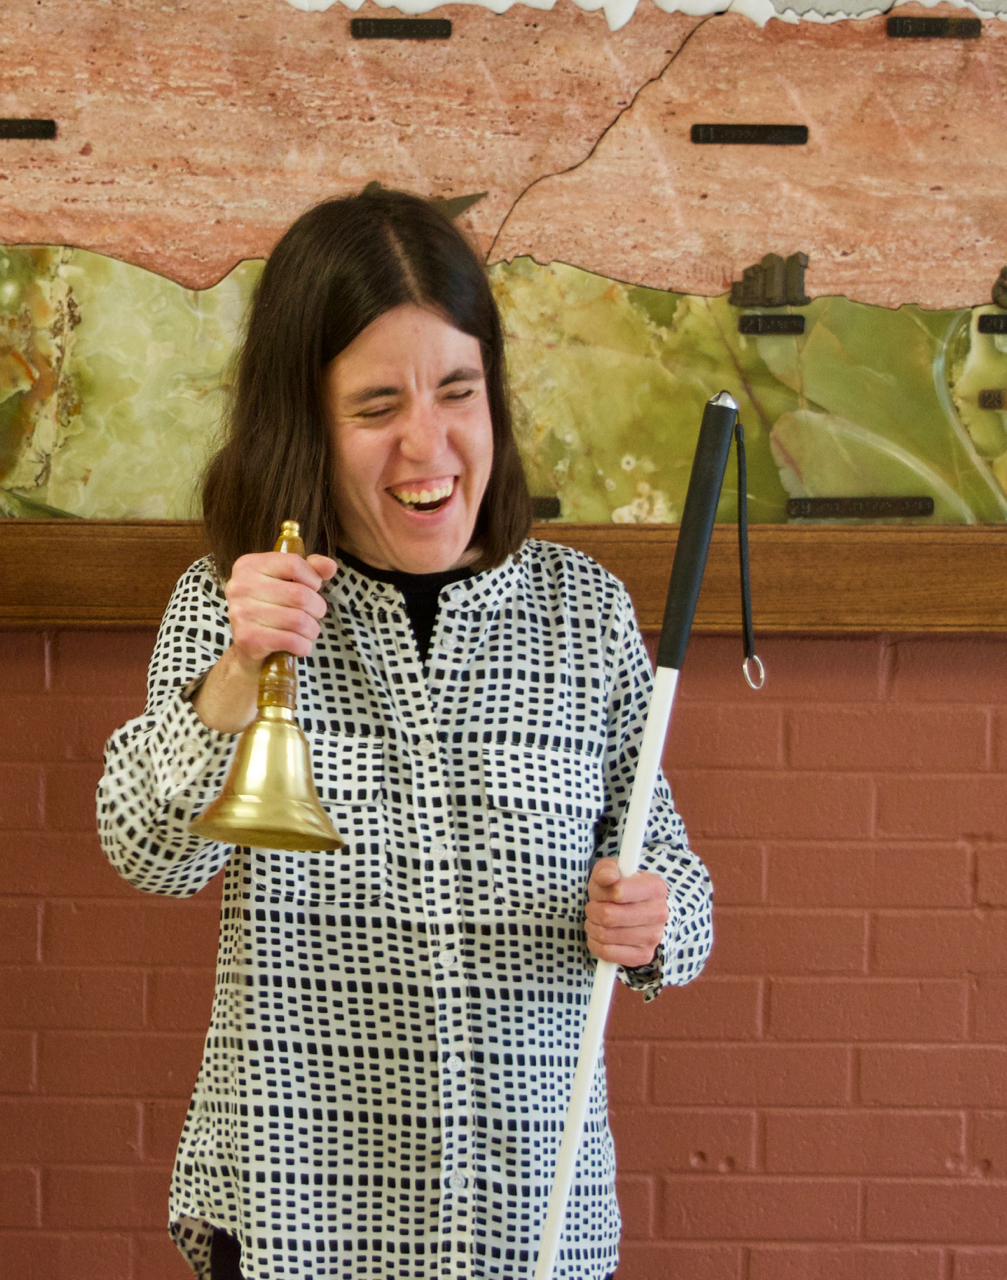 Serena ringing her Freedom Bell at her graduation